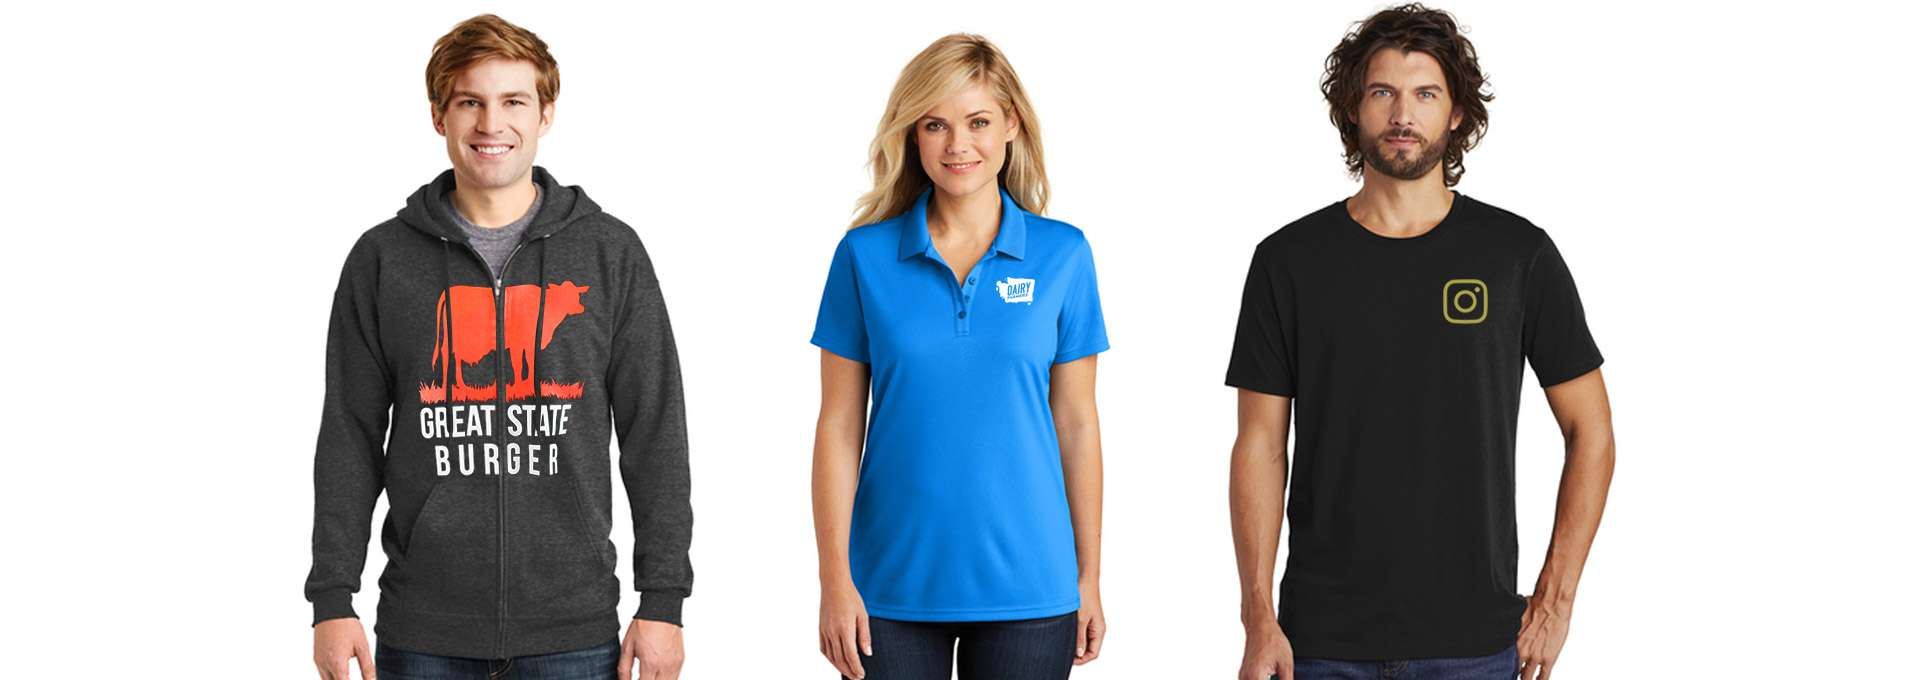 Custom Printed & Branded Promotional Apparel Supplier Seattle